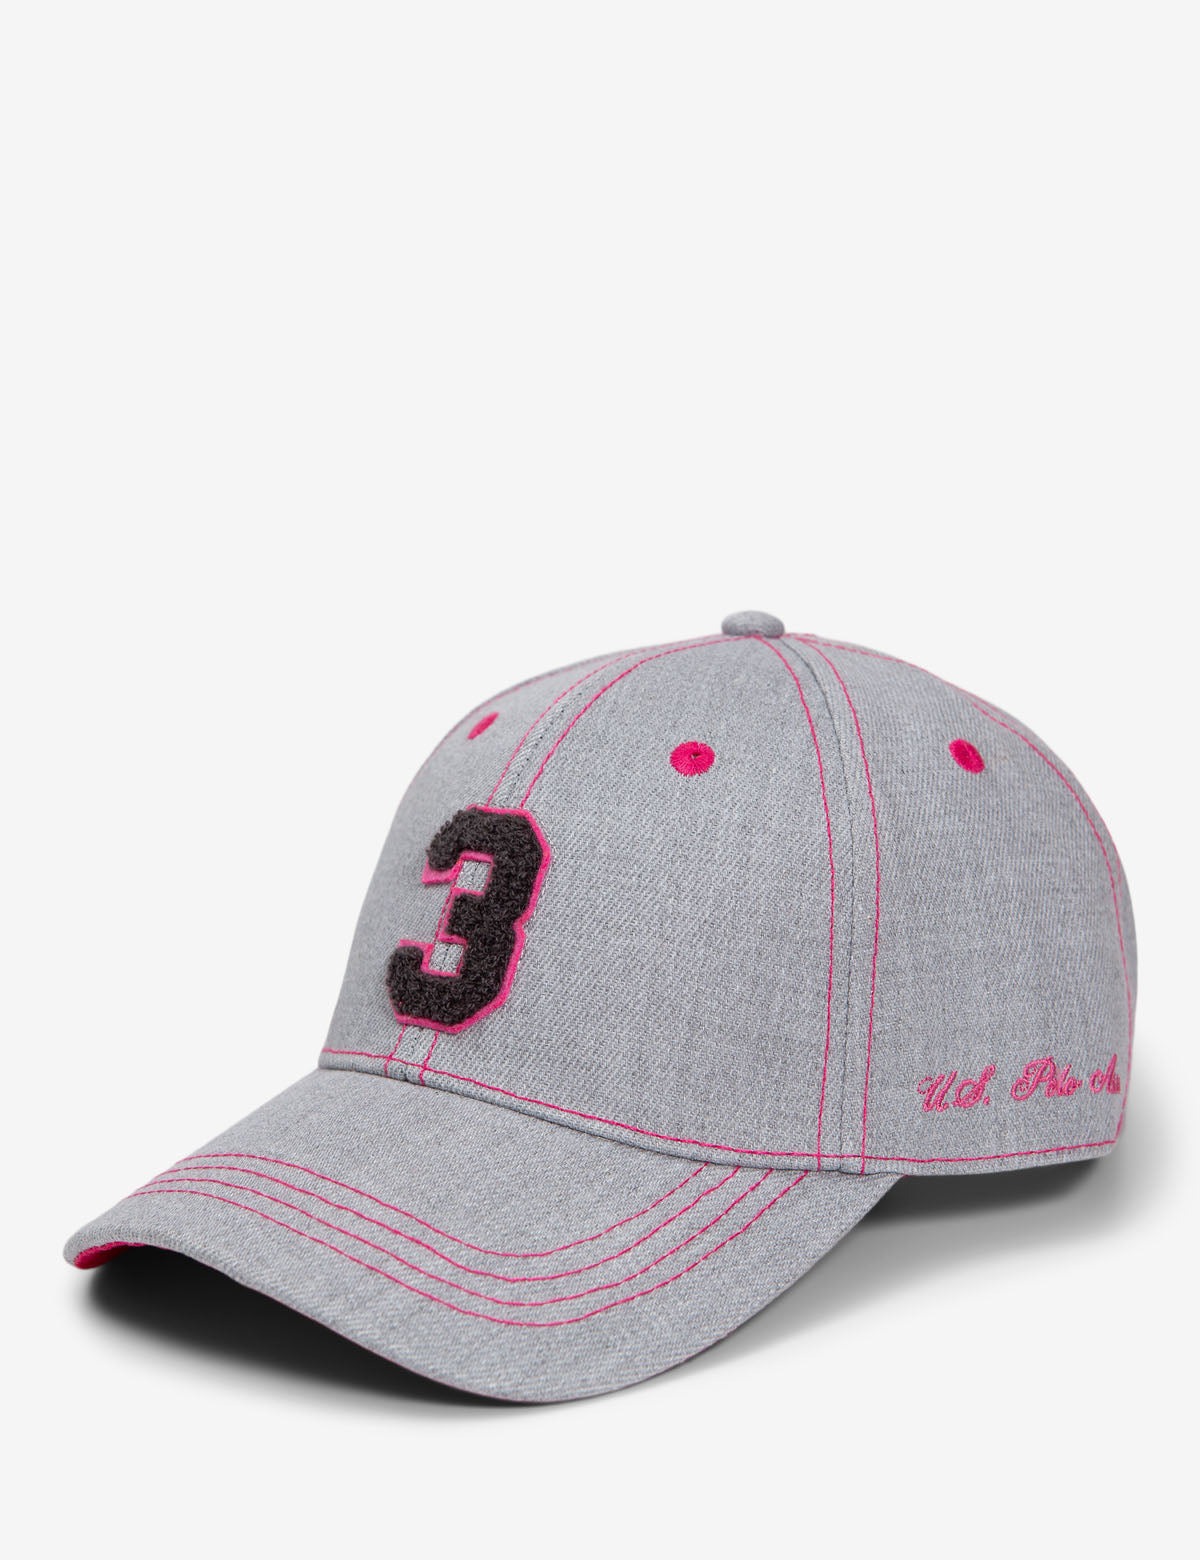 NUMBER 3 BASEBALL HAT - U.S. Polo Assn.